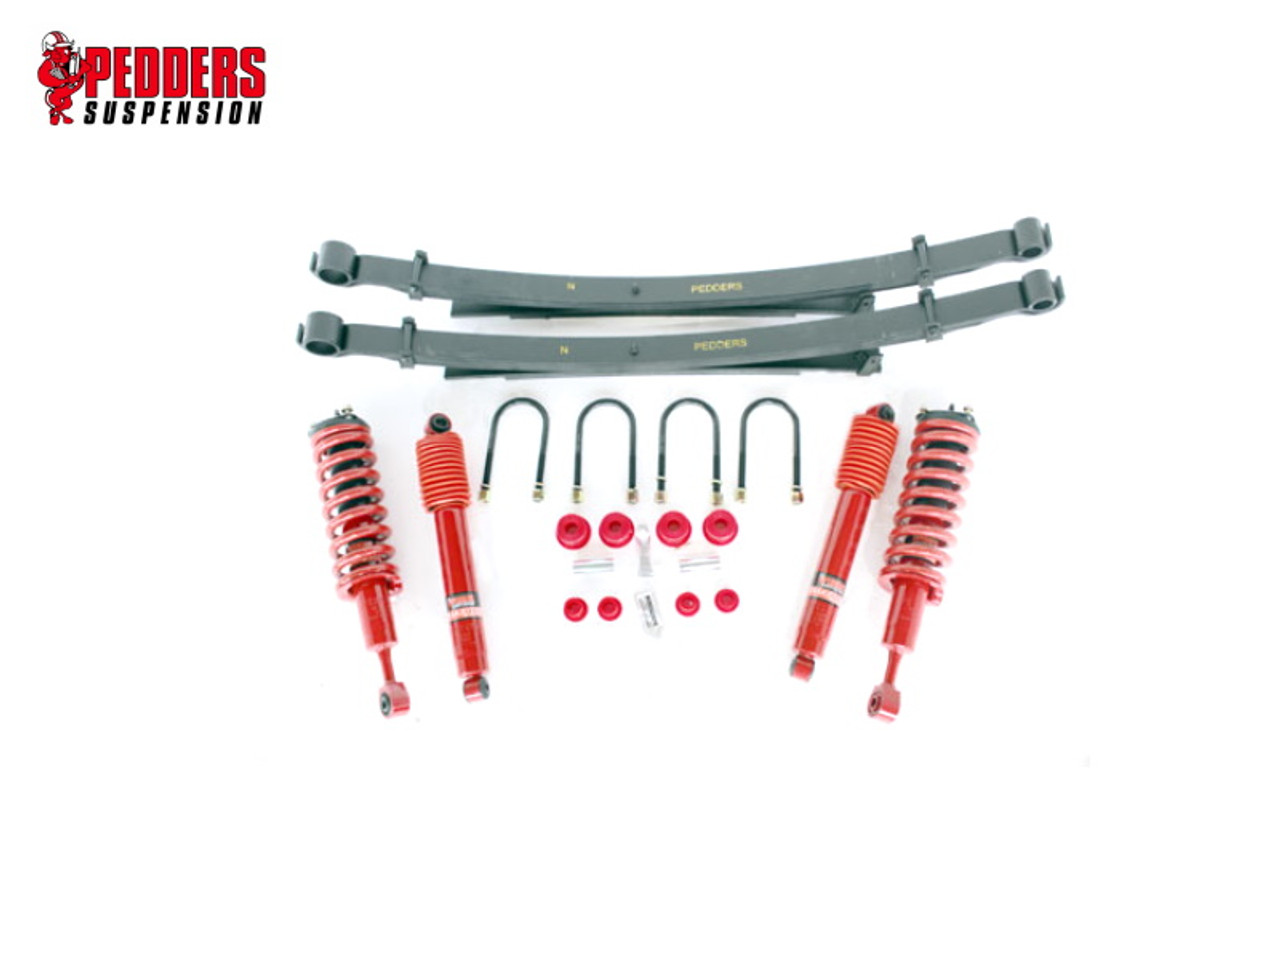 ISUZU D-MAX 2012 - 2017 SUSPENSION KIT 40MM LIFT COMFORT RIDE